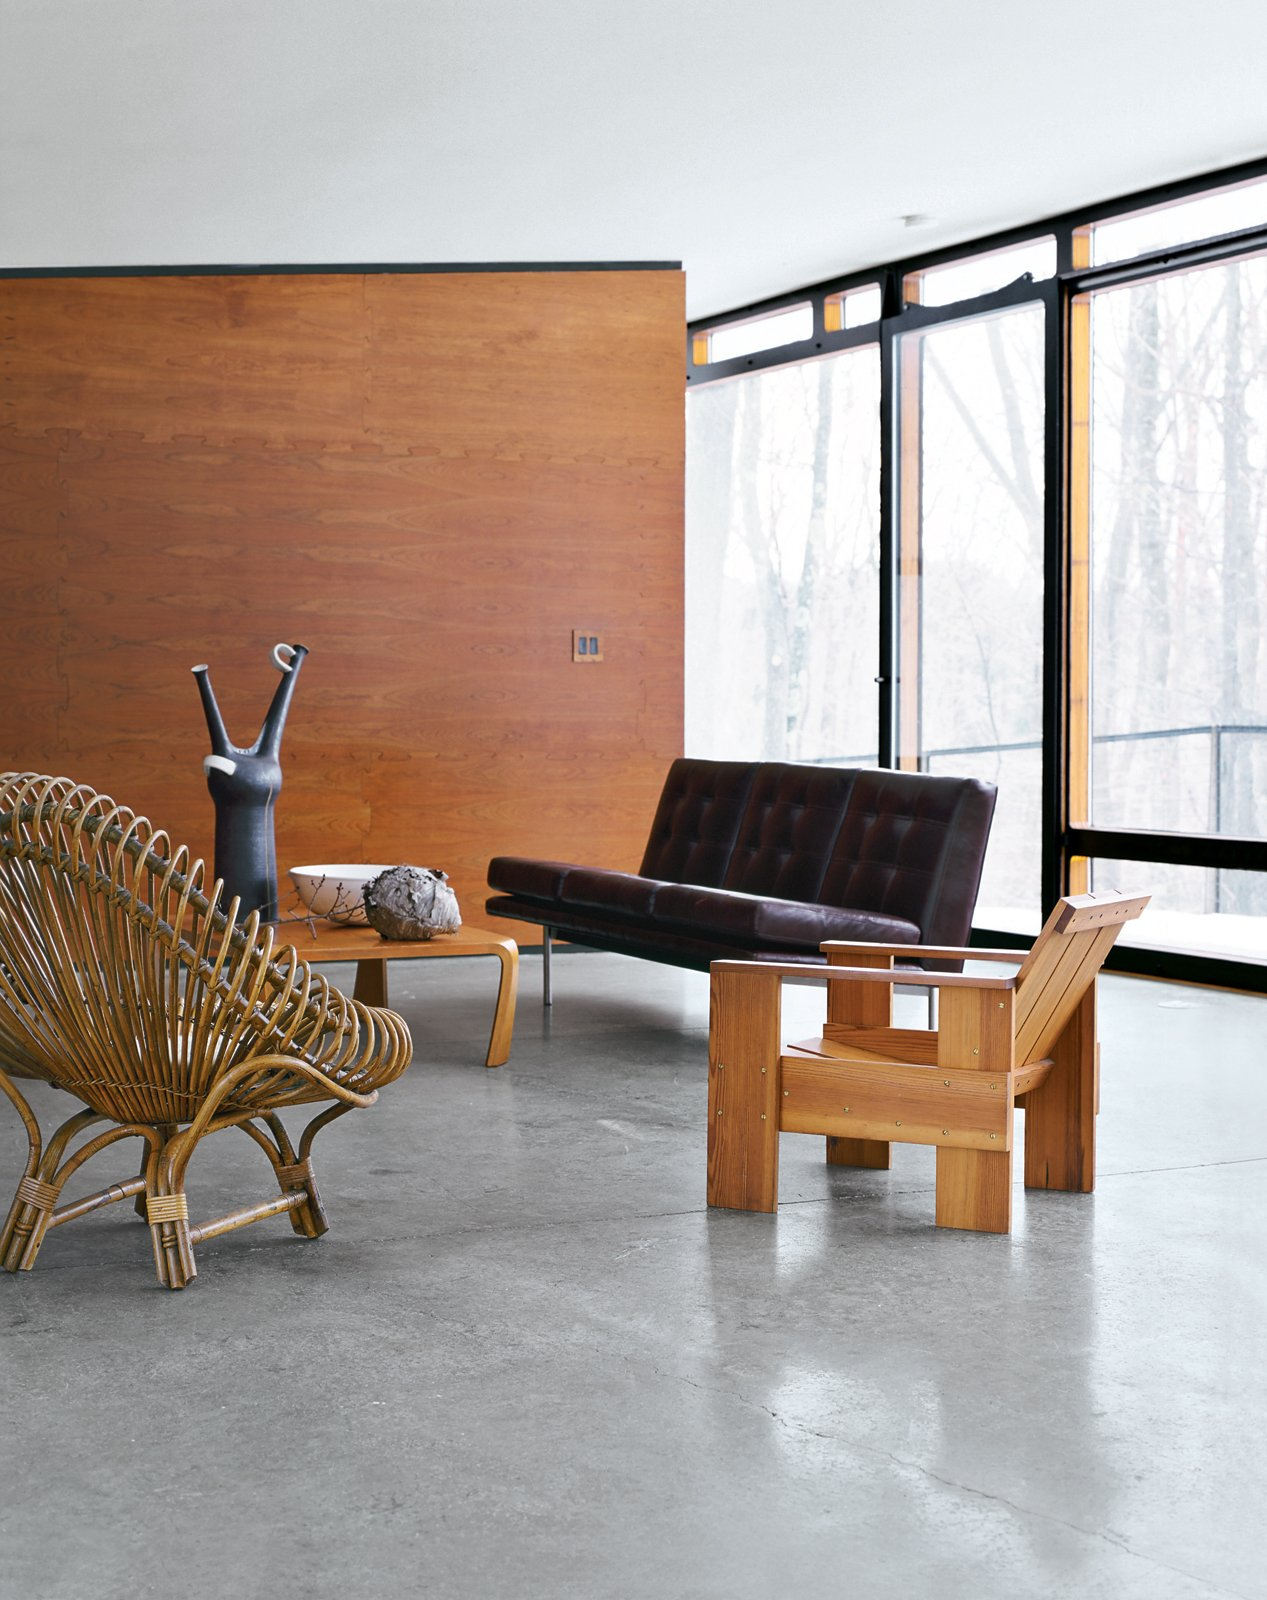 Living Room, Sofa, Chair, and Concrete Floor Architect William Massie built a hybrid prefab home for vintage retailer Greg Wooten, who handled the interiors. In the living room is a 1950s Franco Albini rattan chair, a Crate chair designed by Gerrit Rietveld in 1934, and a 1970s sofa by Edward Axel Roffman. The tall ceramic piece is by Bruno Gambone.  Photo 3 of 12 in A Hybrid Prefab Home in Upstate New York